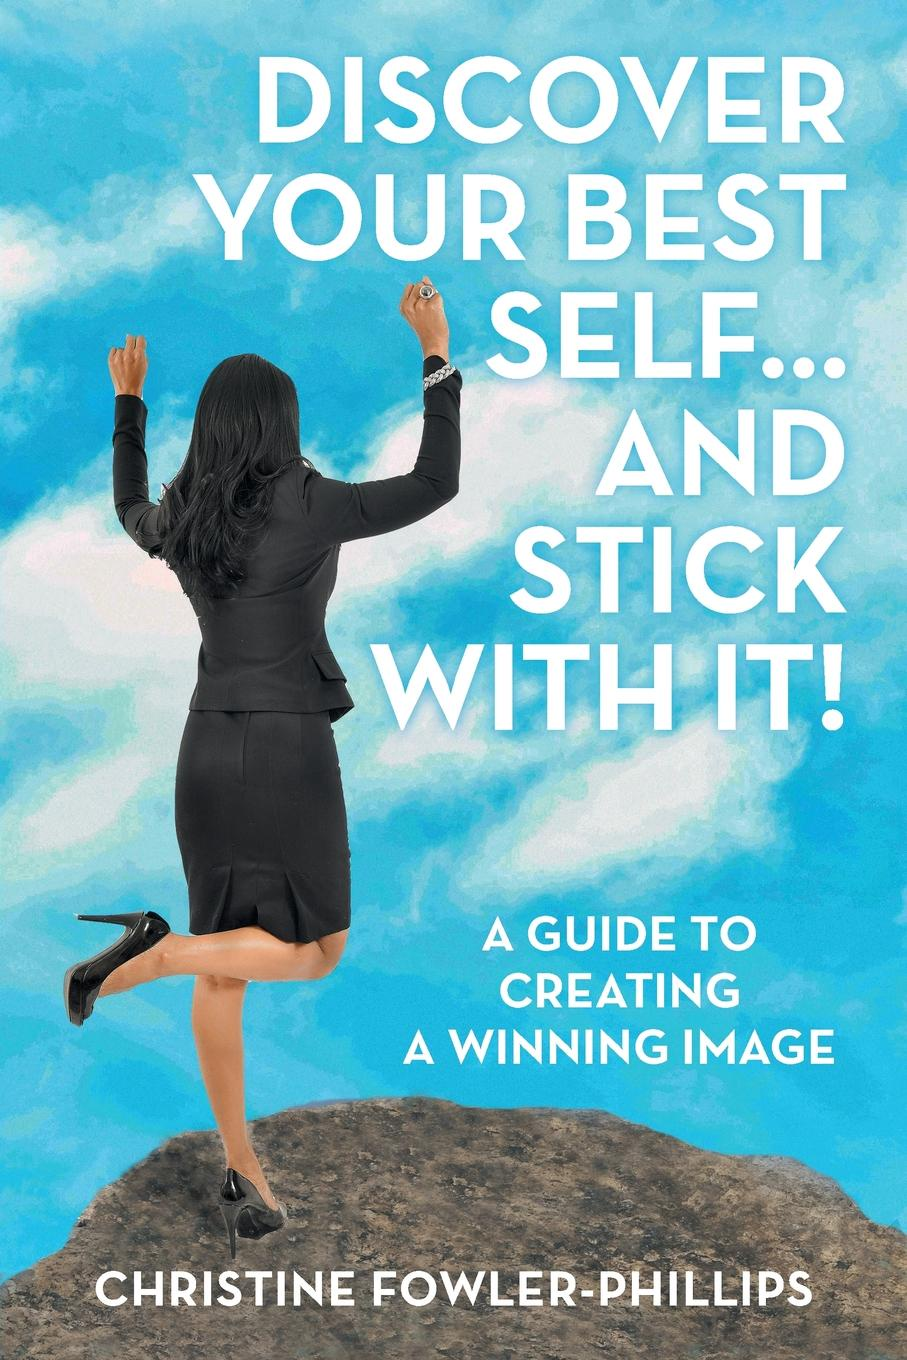 Christine Fowler-Phillips Discover Your Best Self ... and Stick with It.. A Guide to Creating a Winning Image diana giddon unequaled tips for building a successful career through emotional intelligence isbn 9781119246084